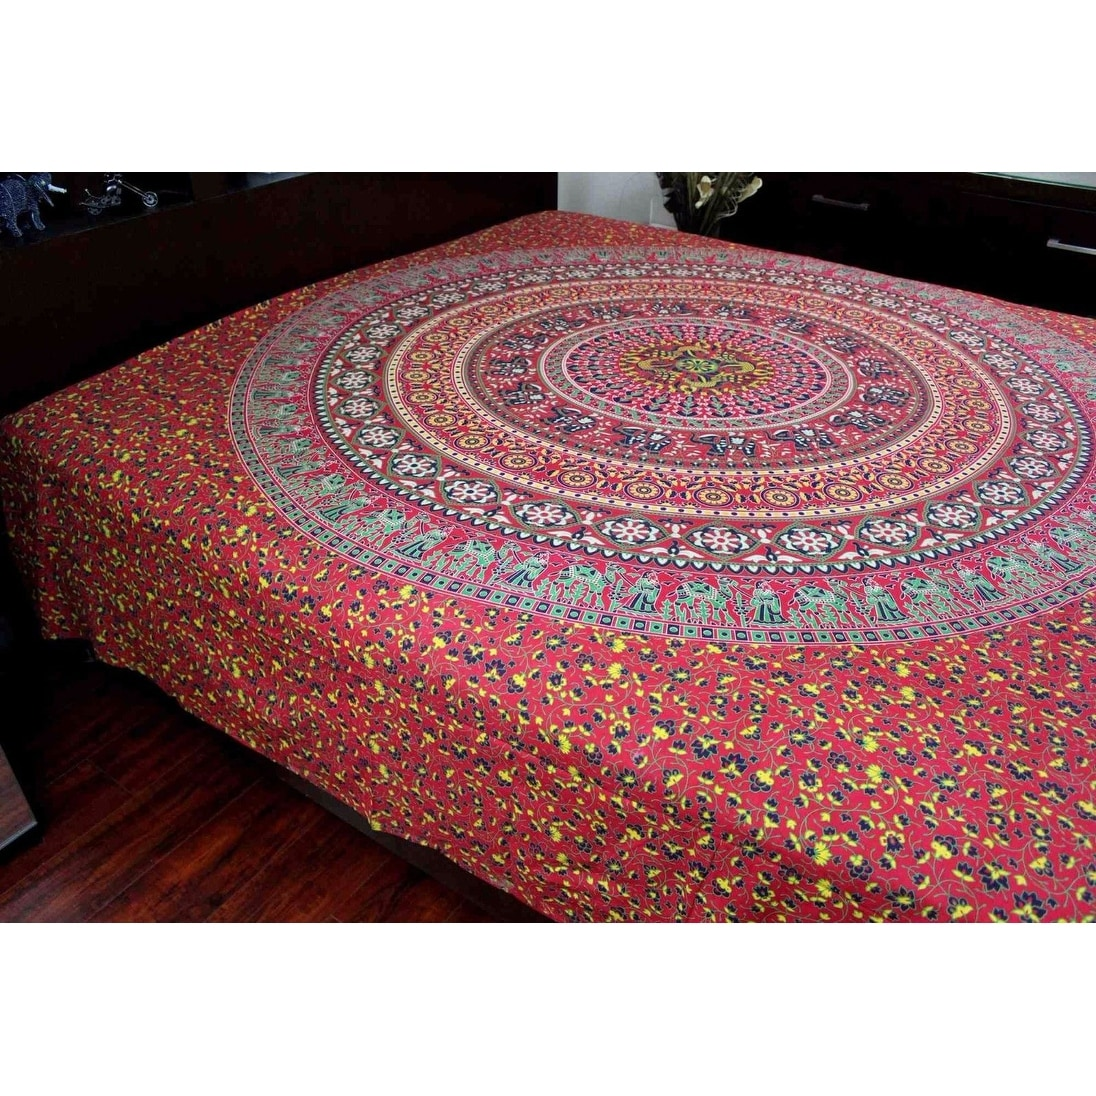 Sanganer Mandala Peacock Cotton Floral Tapestry Wall Hanging Tablecloth Bedspread Bedsheet Beach Sheet Dorm Decor Twin 68 X 102 Inches Home Kitchen Tapestries